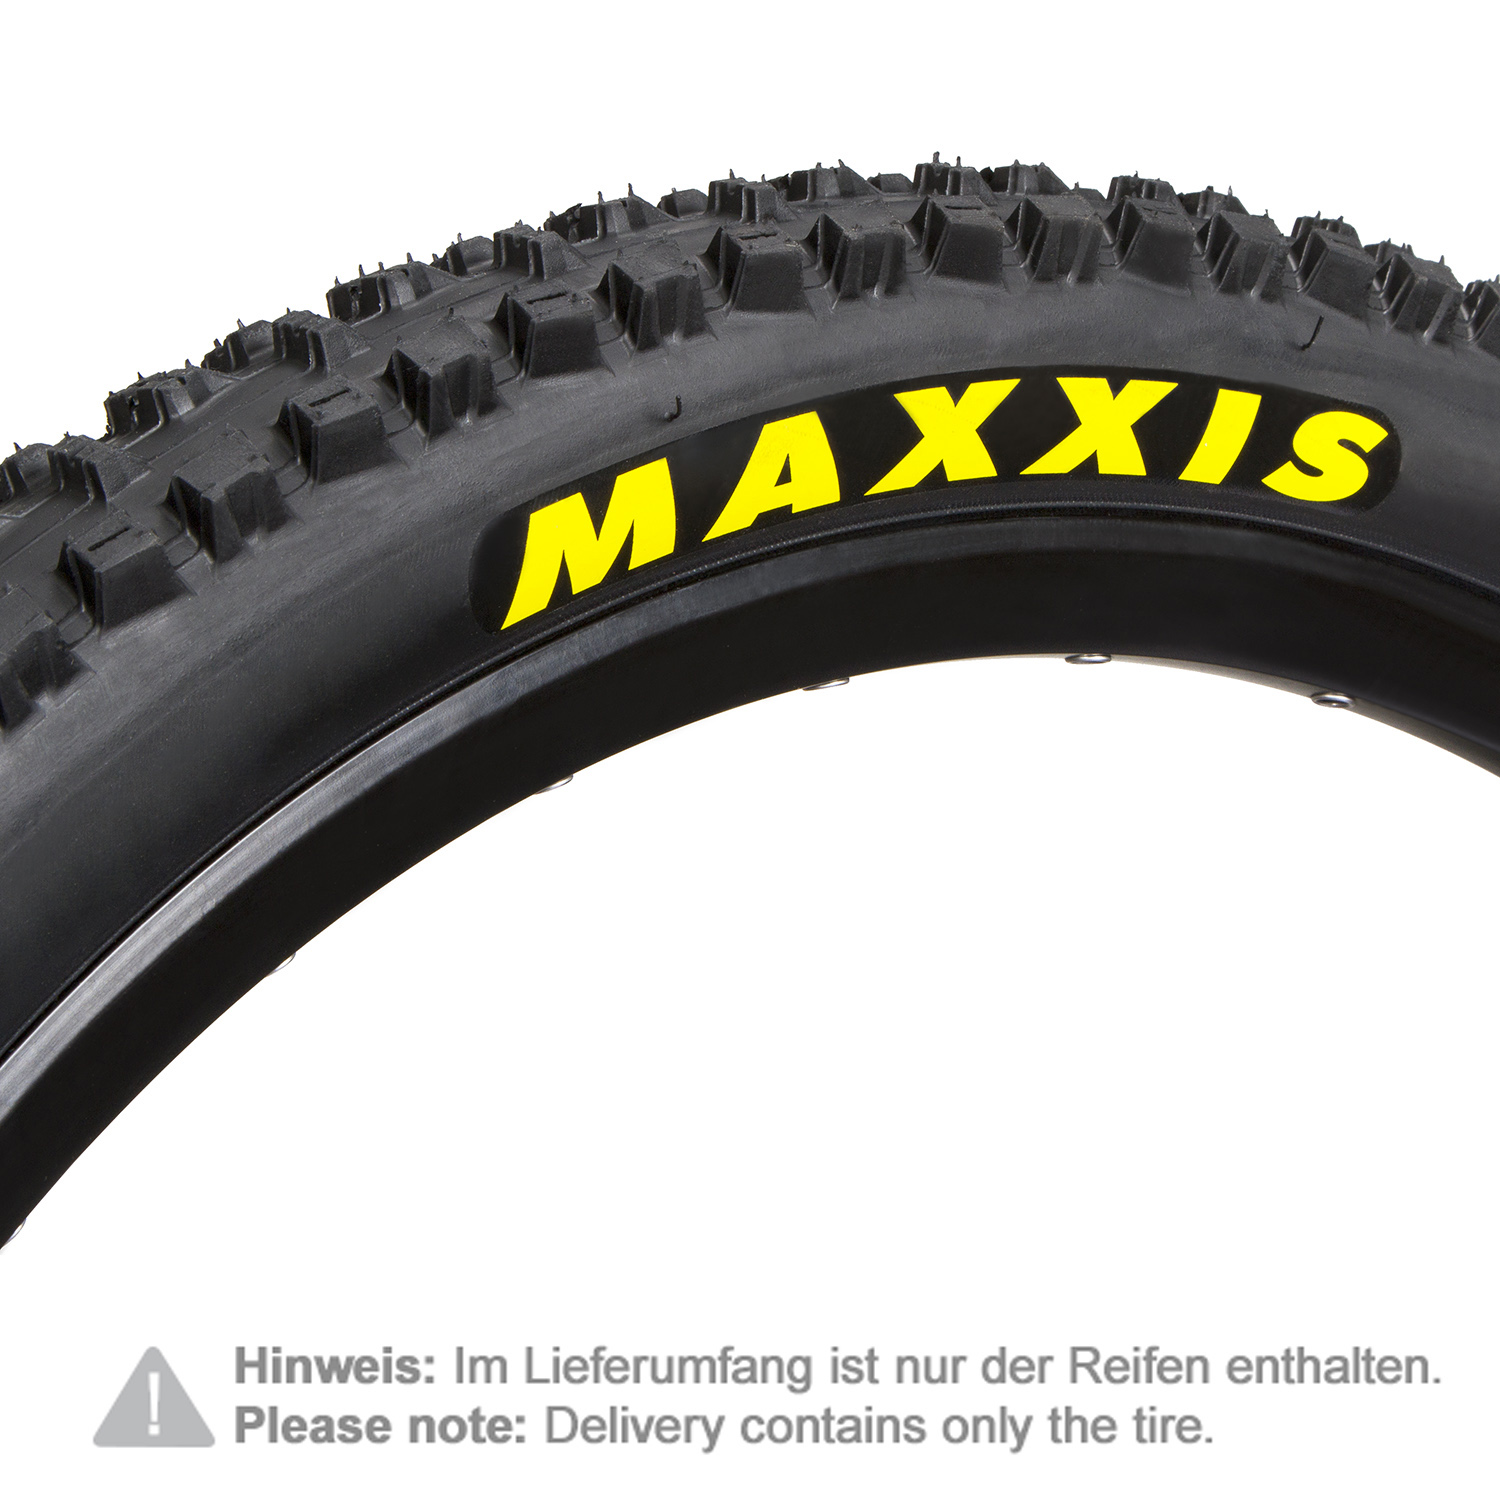 maxxis mtb reifen high roller ii freeride schwarz 26 x 2. Black Bedroom Furniture Sets. Home Design Ideas